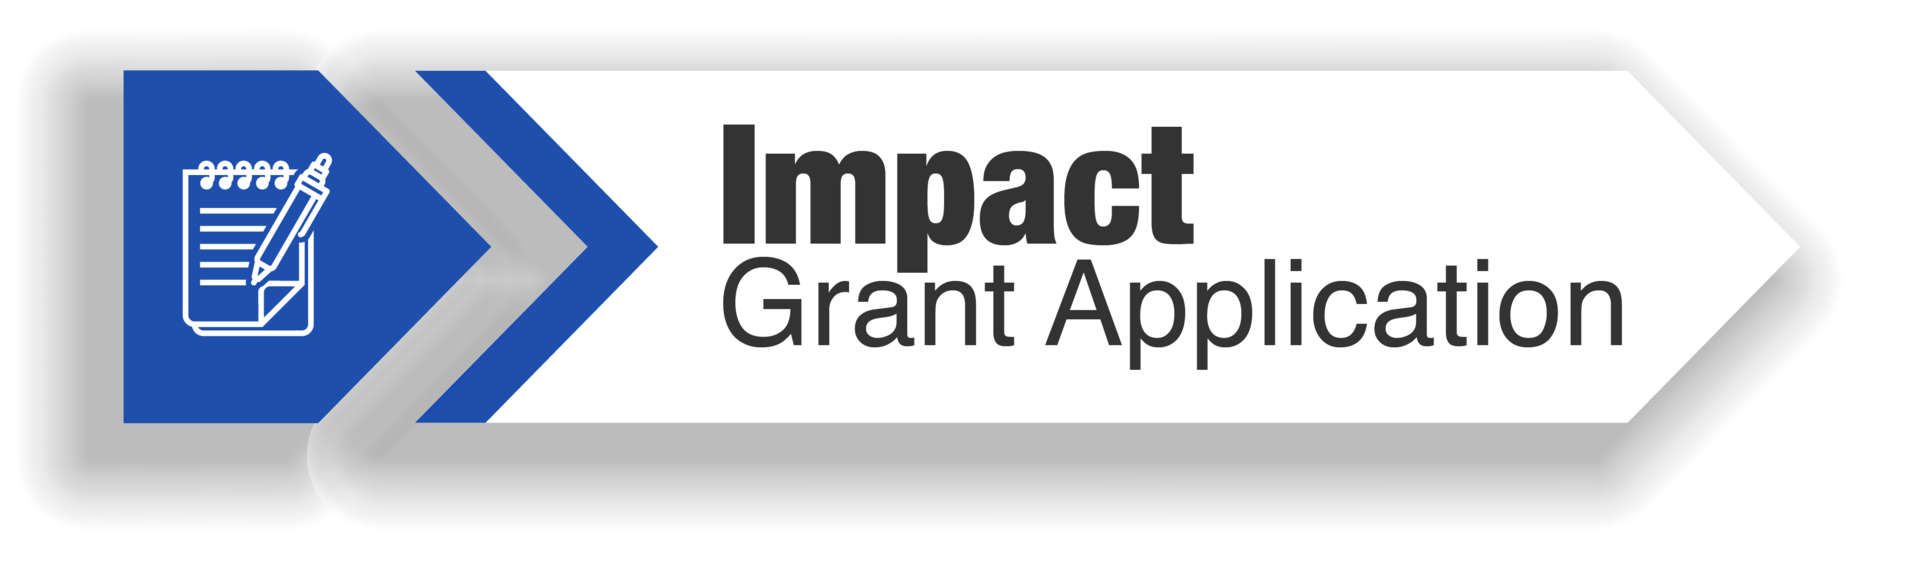 Impact Grant Application